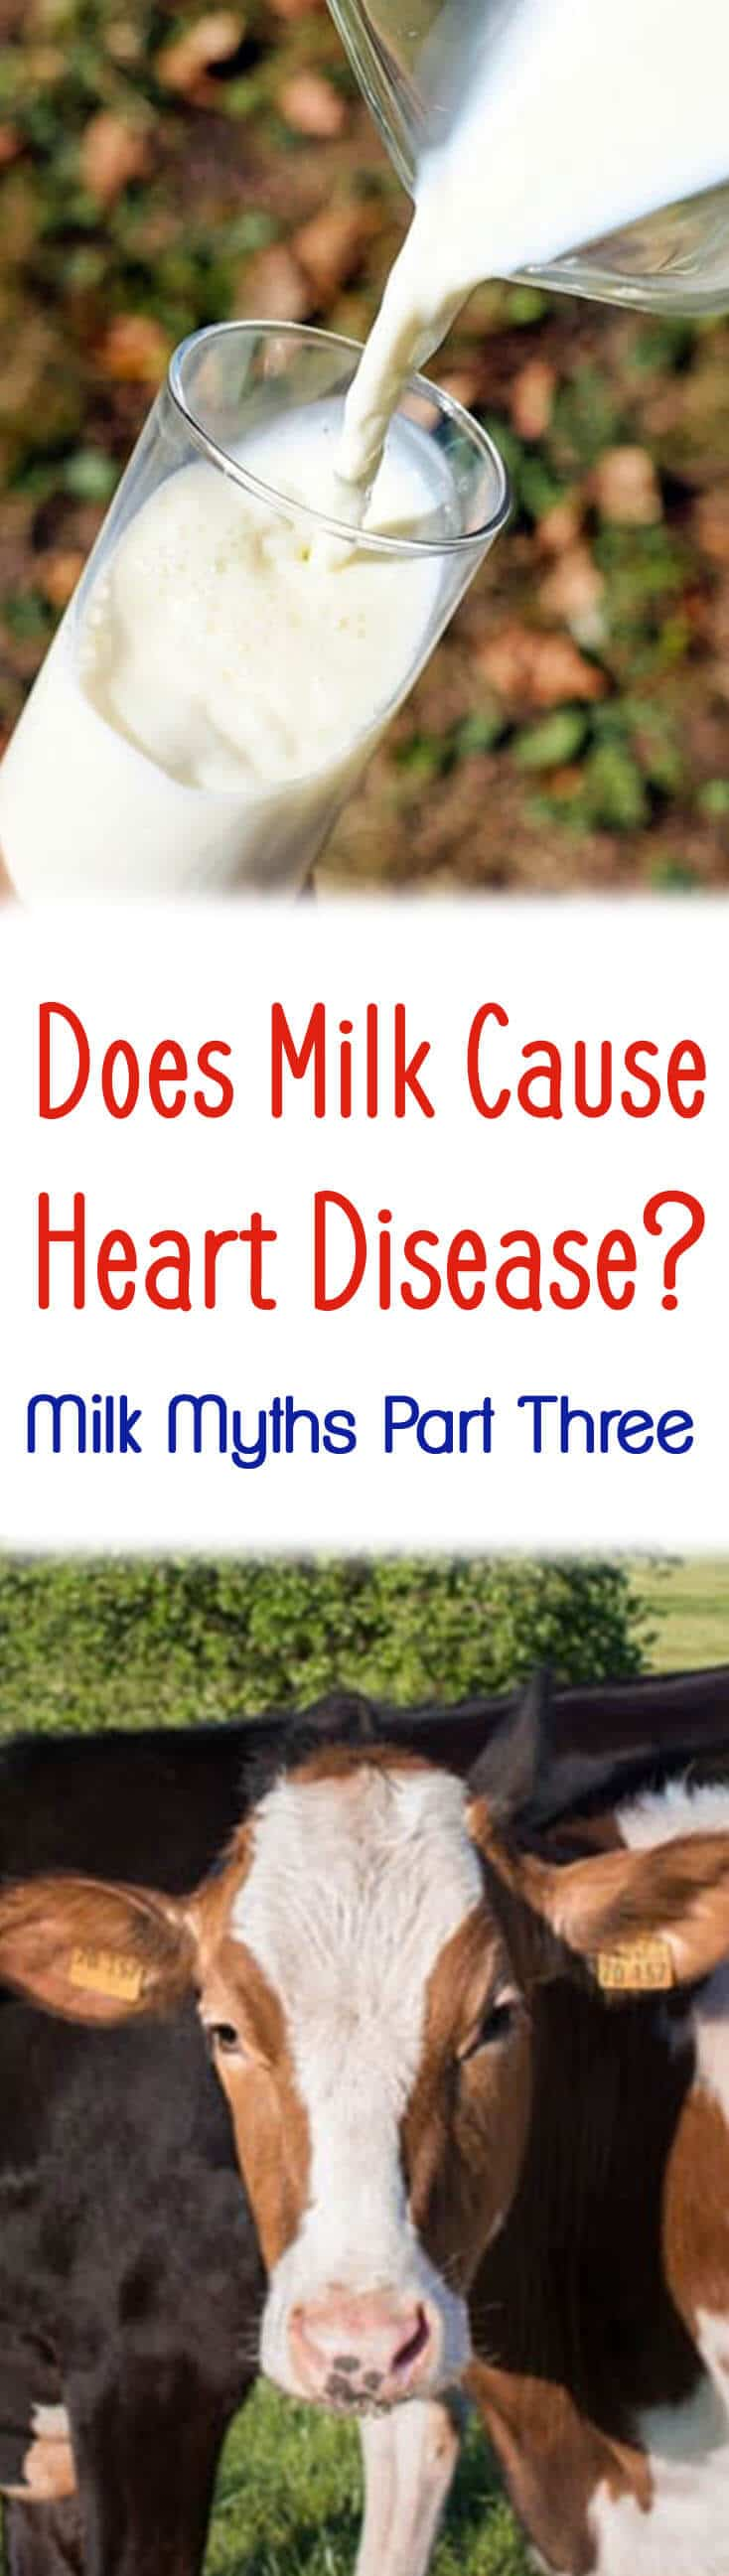 "A pinterest image of milk and cow with the text overlay ""Does Milk Cause Heart Disease? Milk Myths Part Three.\"""